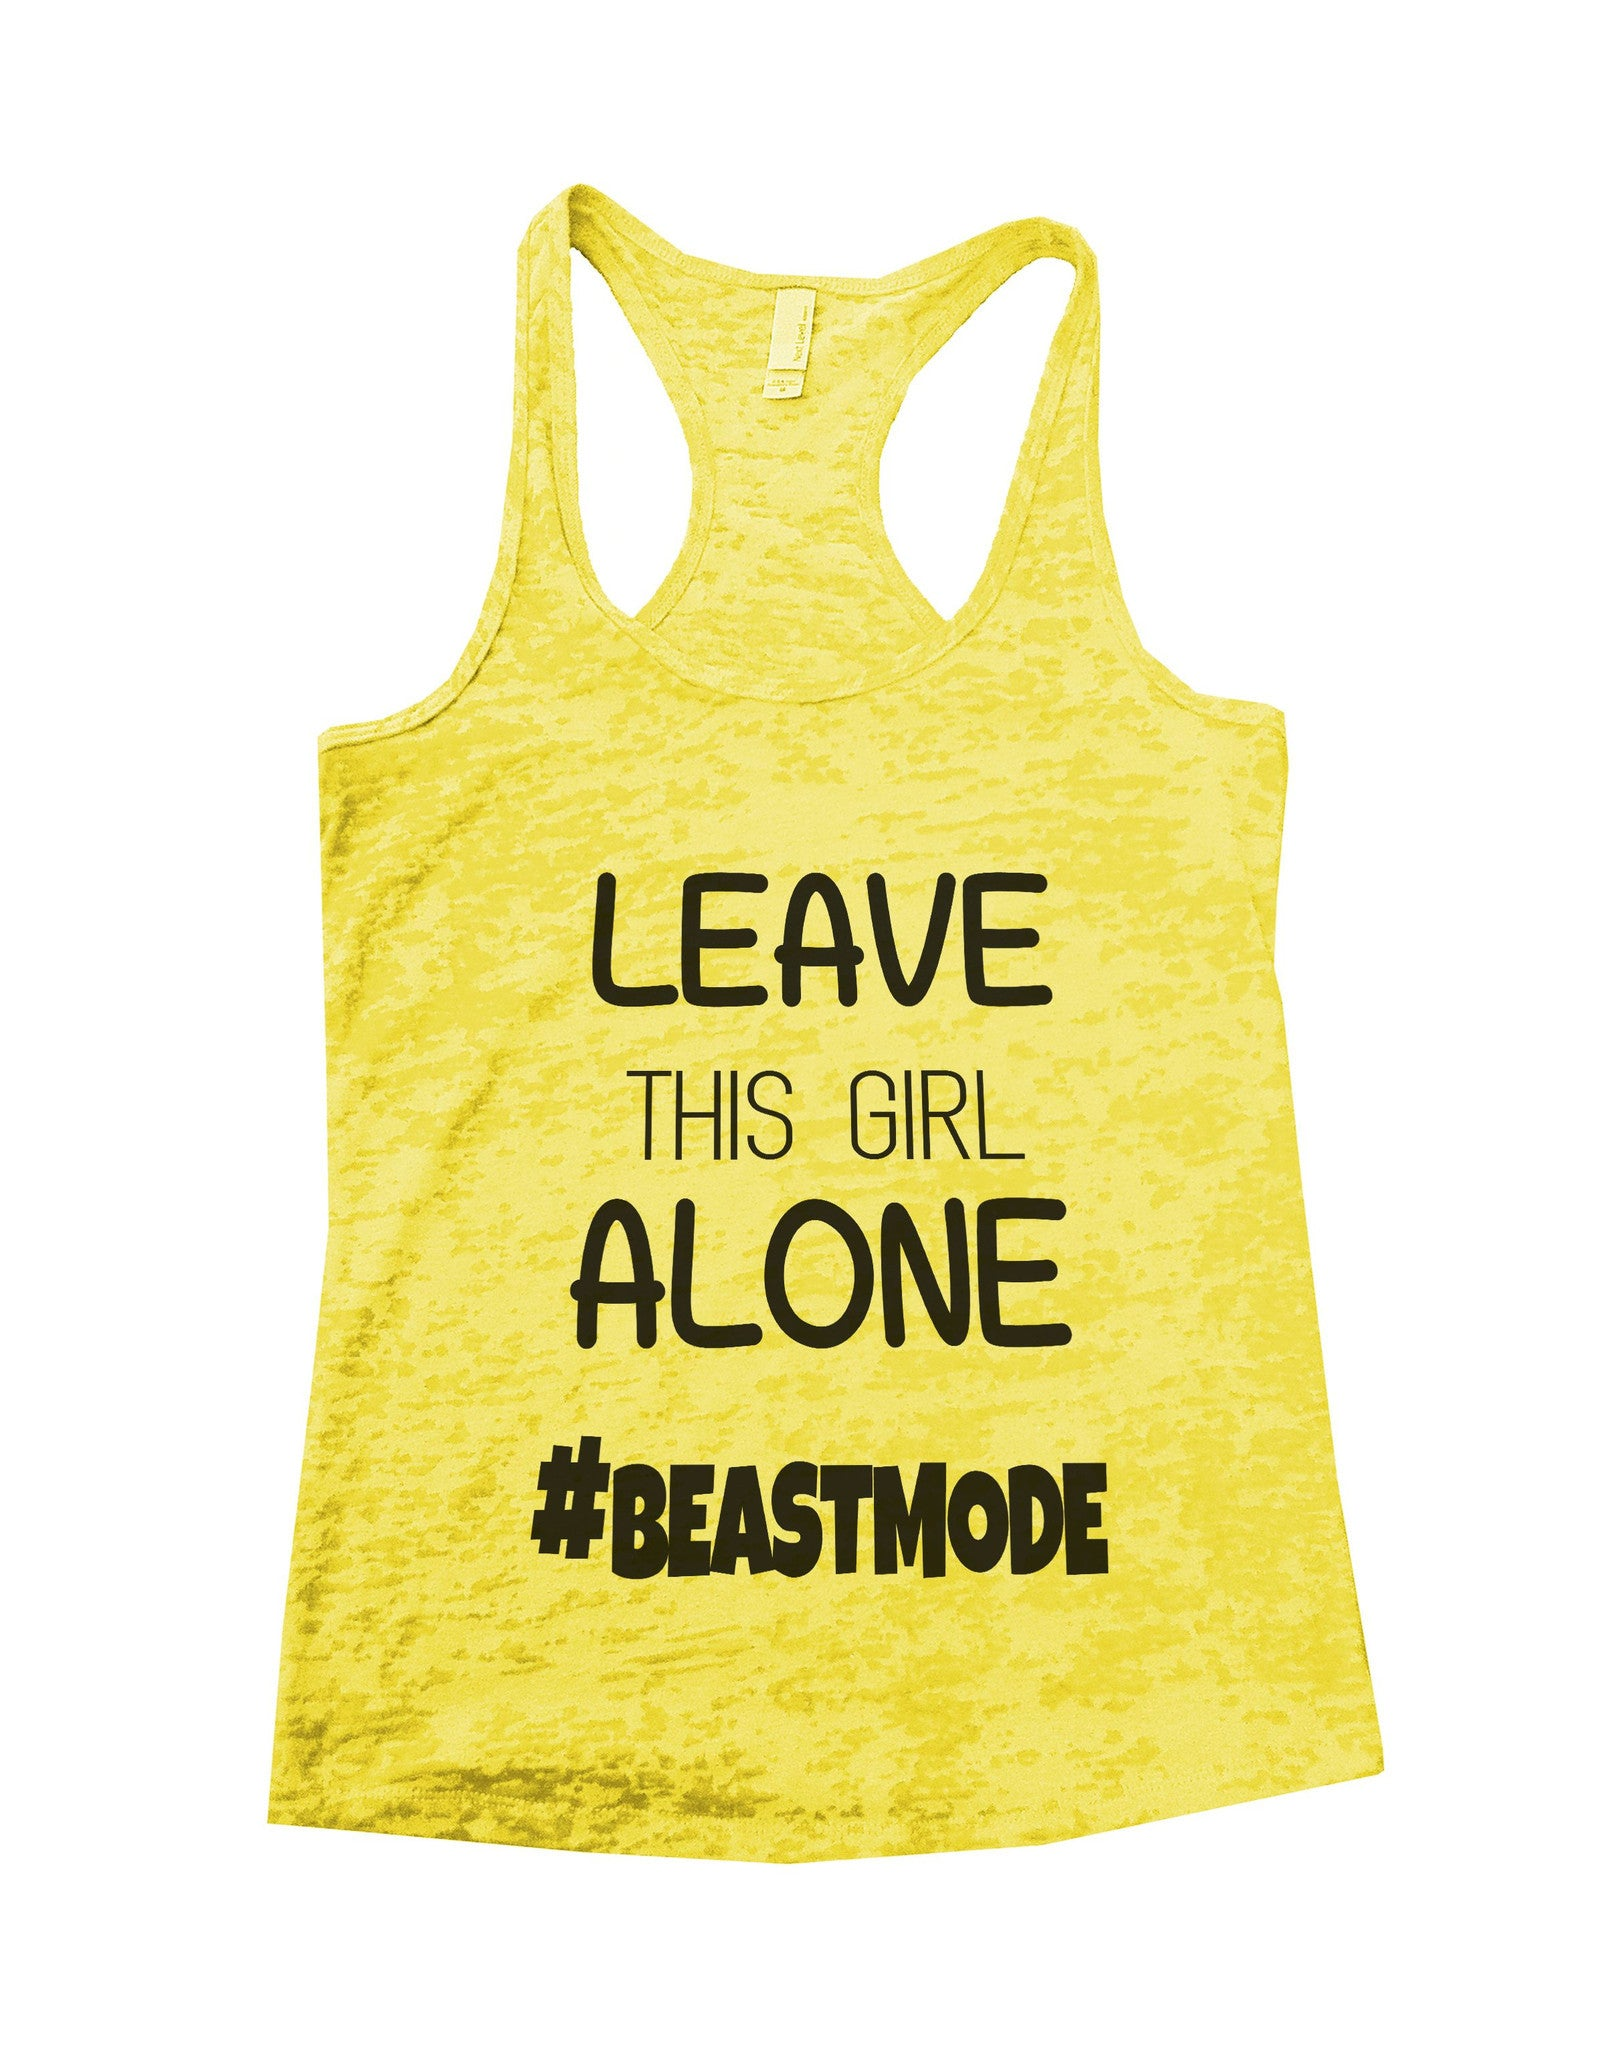 Leave This Girl Alone Beastmode Burnout Tank Top By BurnoutTankTops.com - 638 - Funny Shirts Tank Tops Burnouts and Triblends  - 2